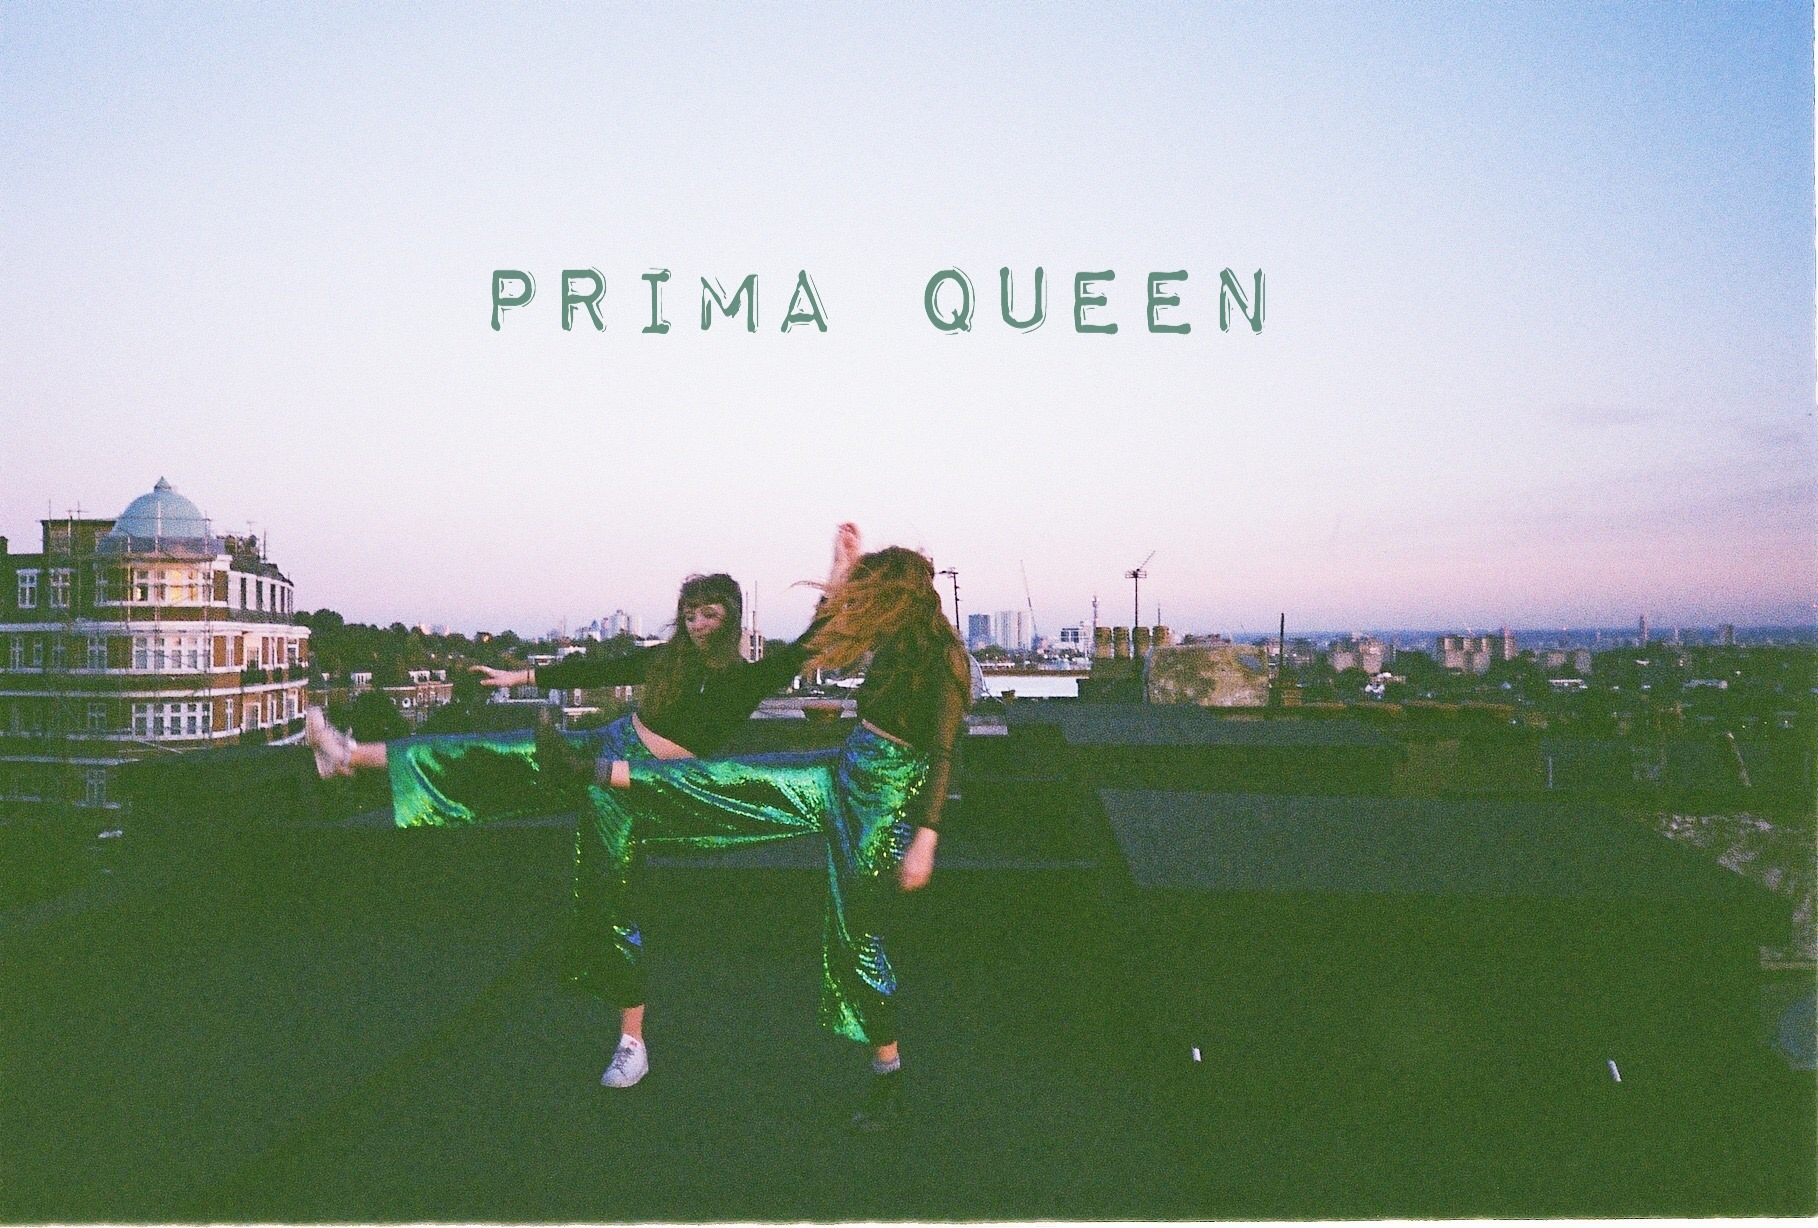 Top 5 Indie Queens of Music Round 14-queens of music round 14-indie music-indie rock-indie pop-punk rock-usa-usa-sweden-music blog-wolfinasuit-wolf in a suit